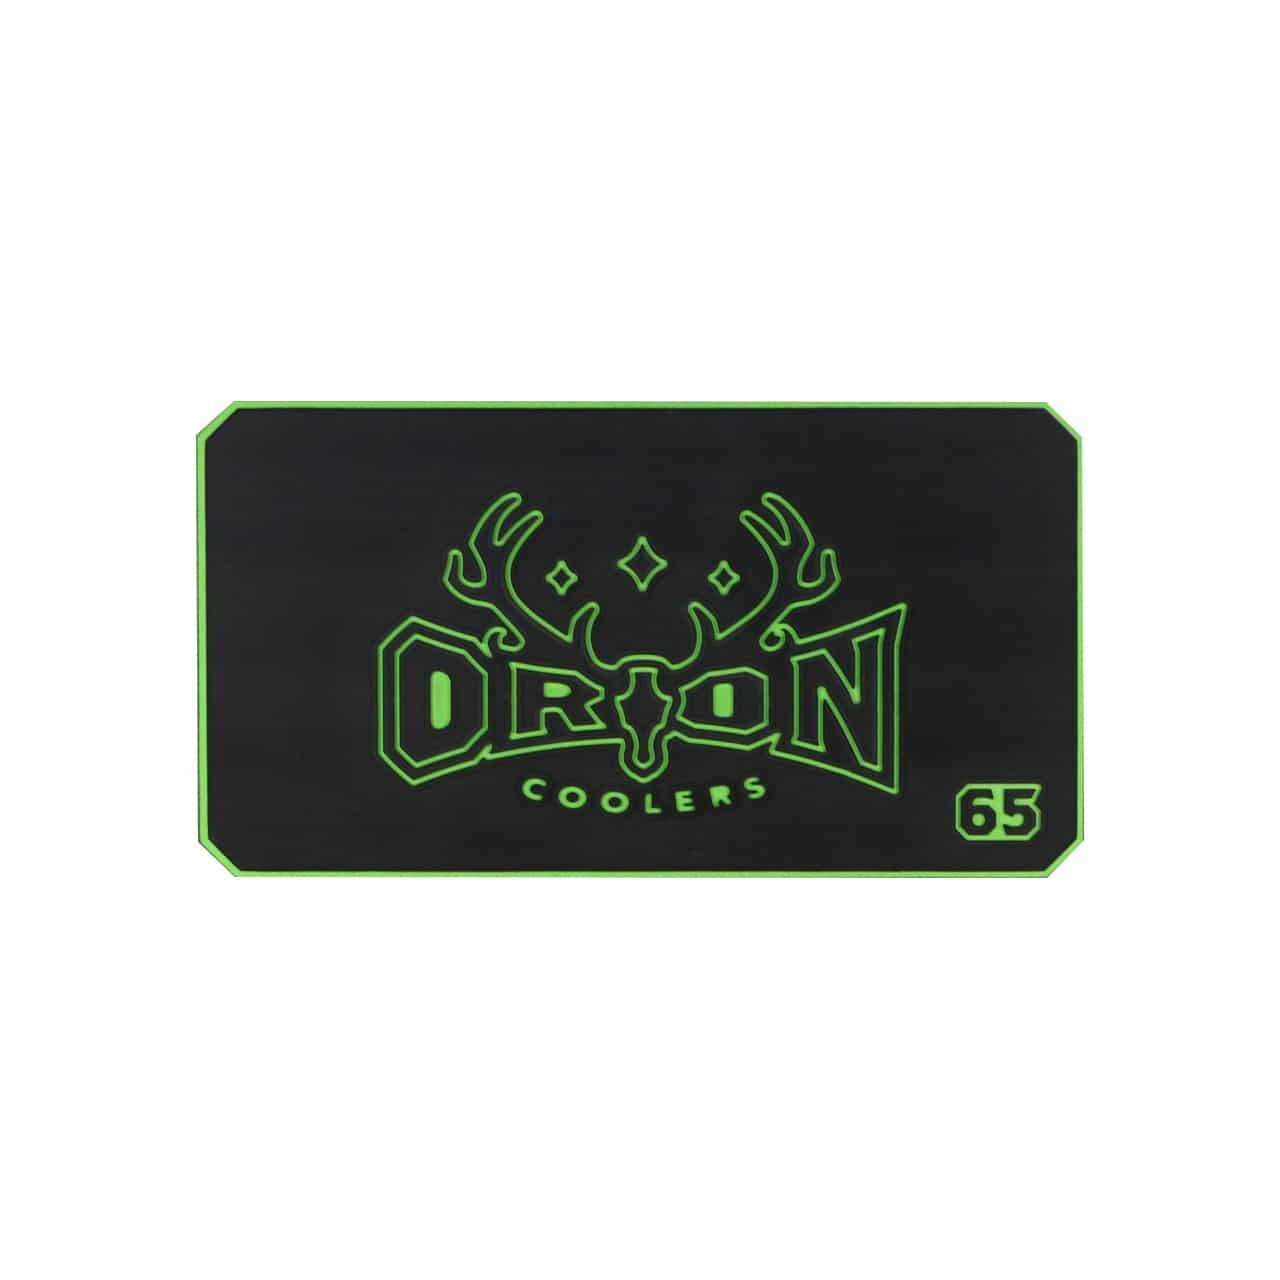 orion cooler pads, original logo